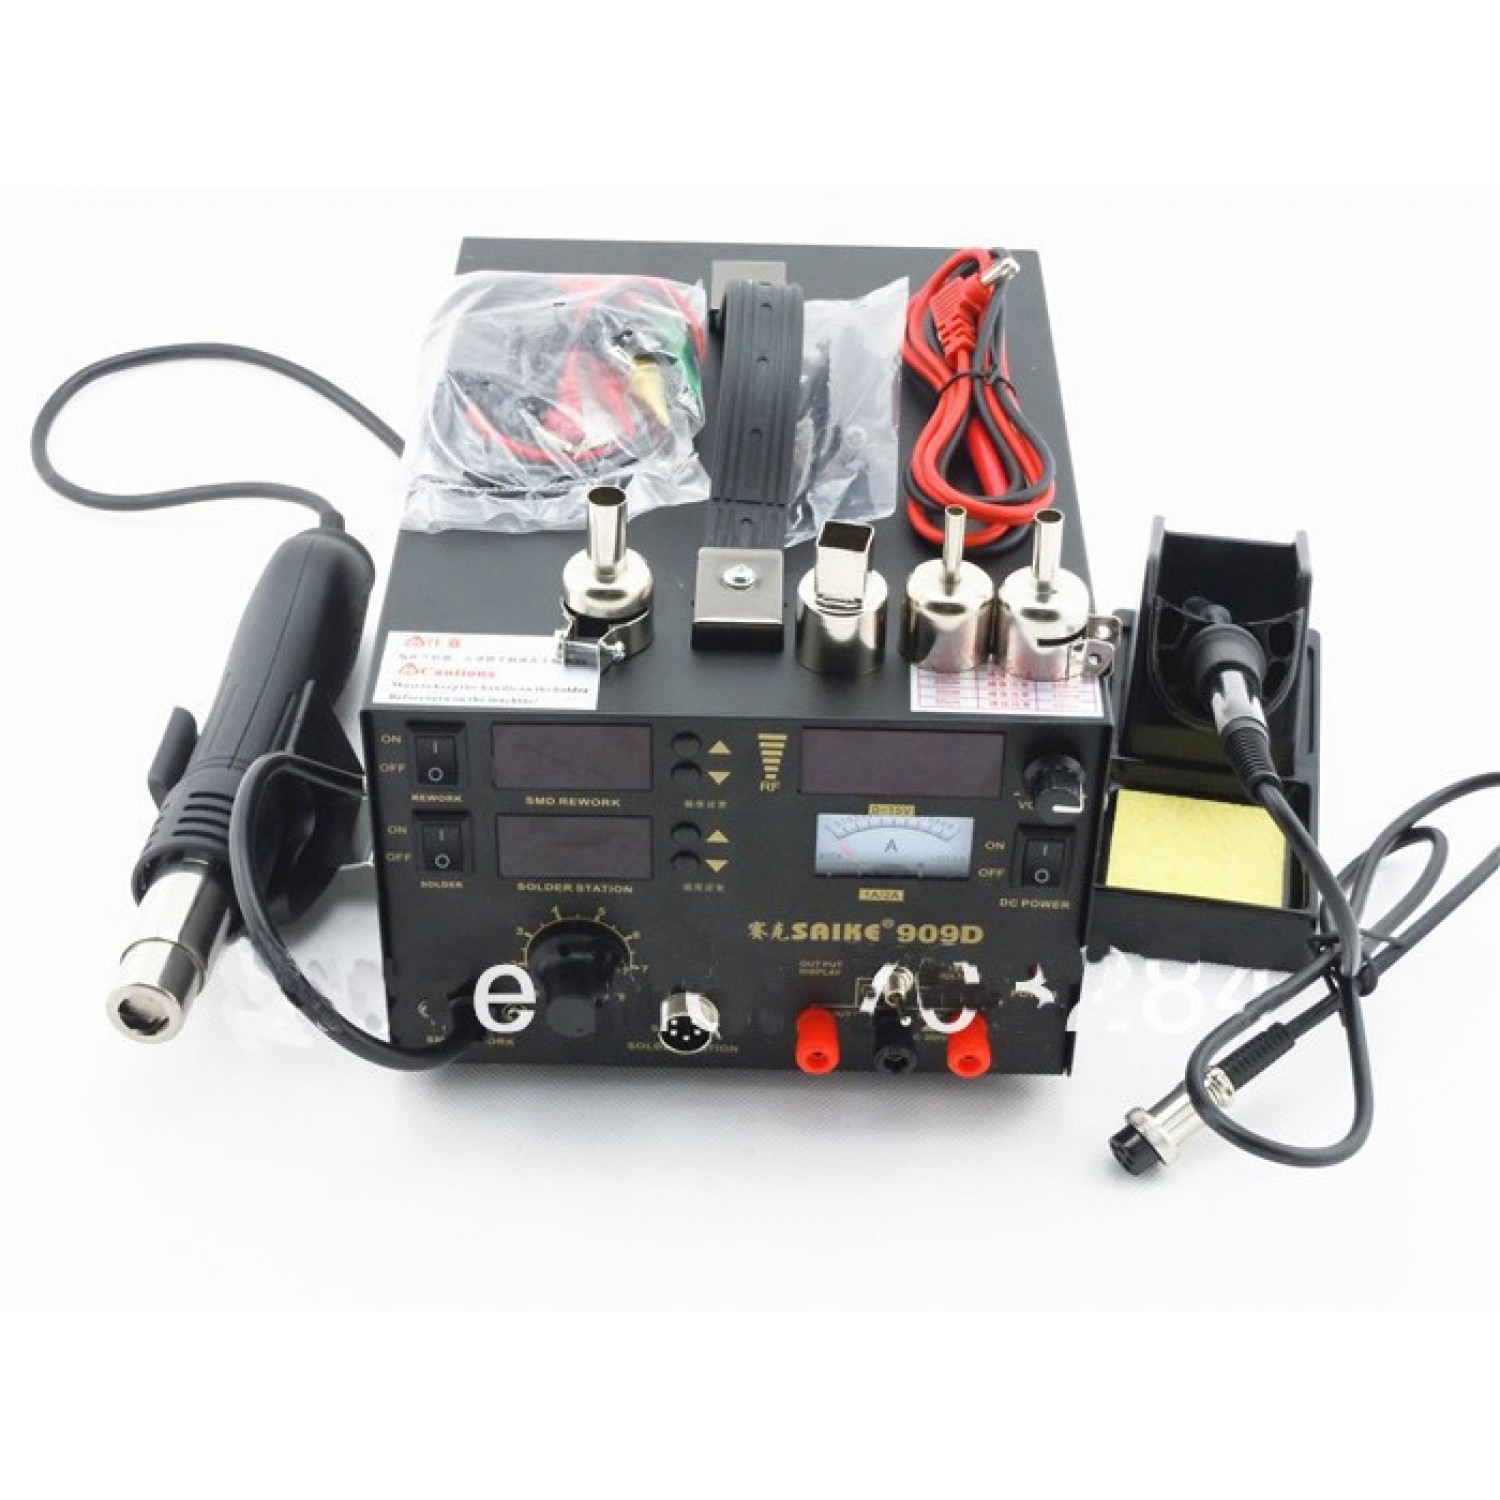 3 in 1 rework station hot air gun soldering station